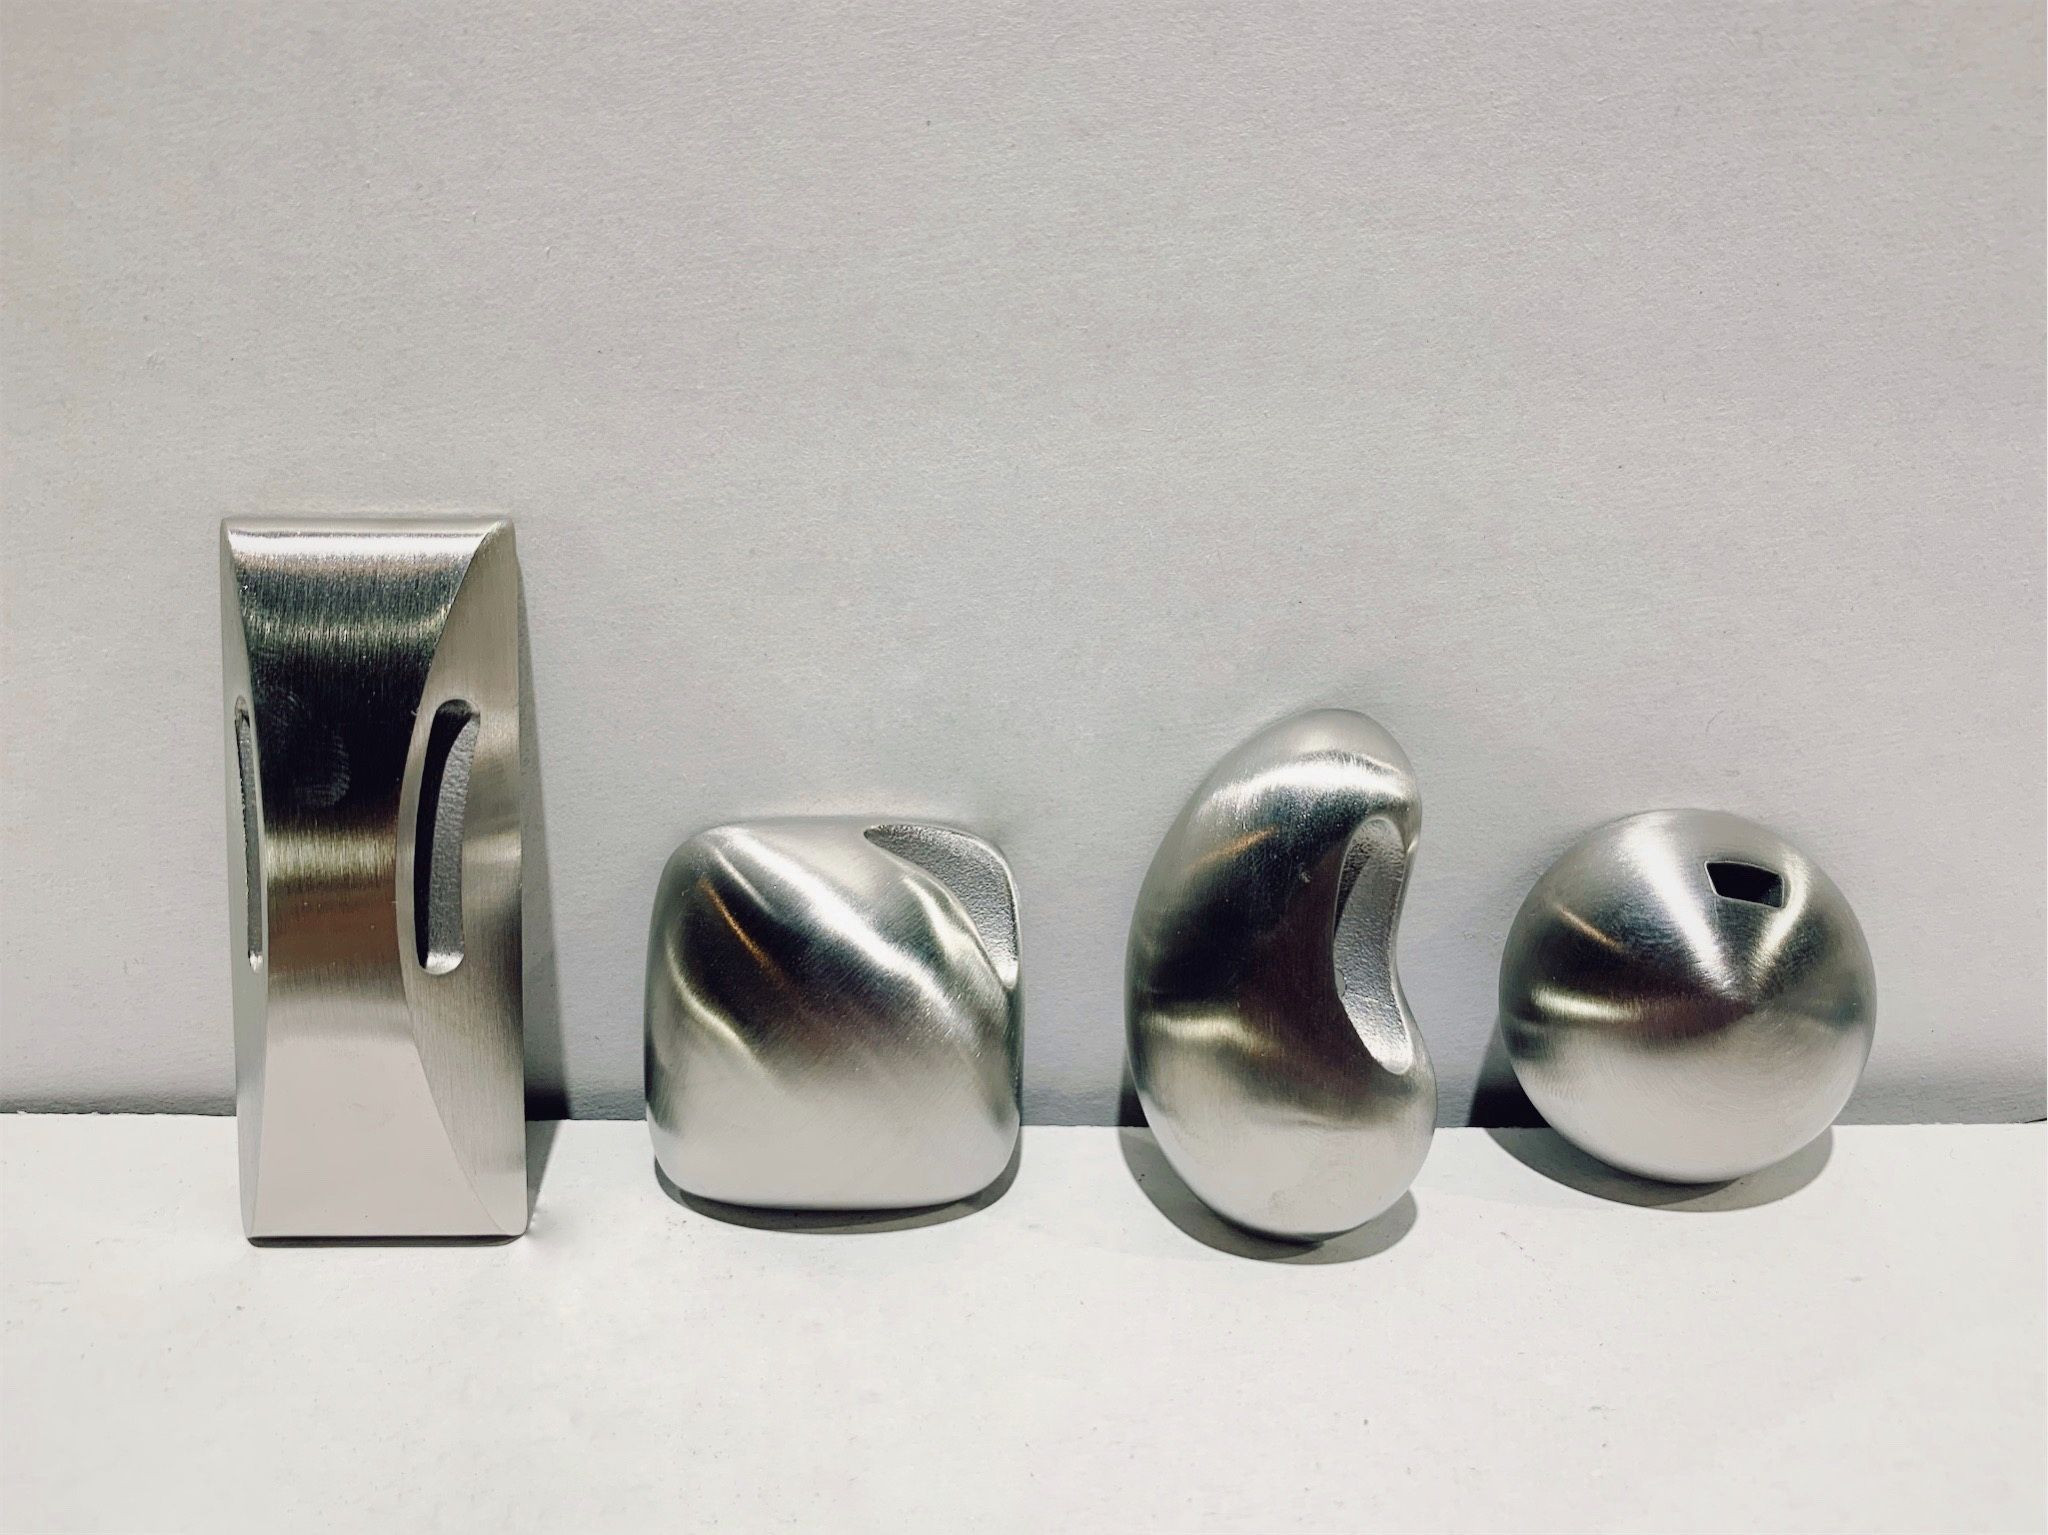 OEM Custom Metal Lost Wax Casting Part